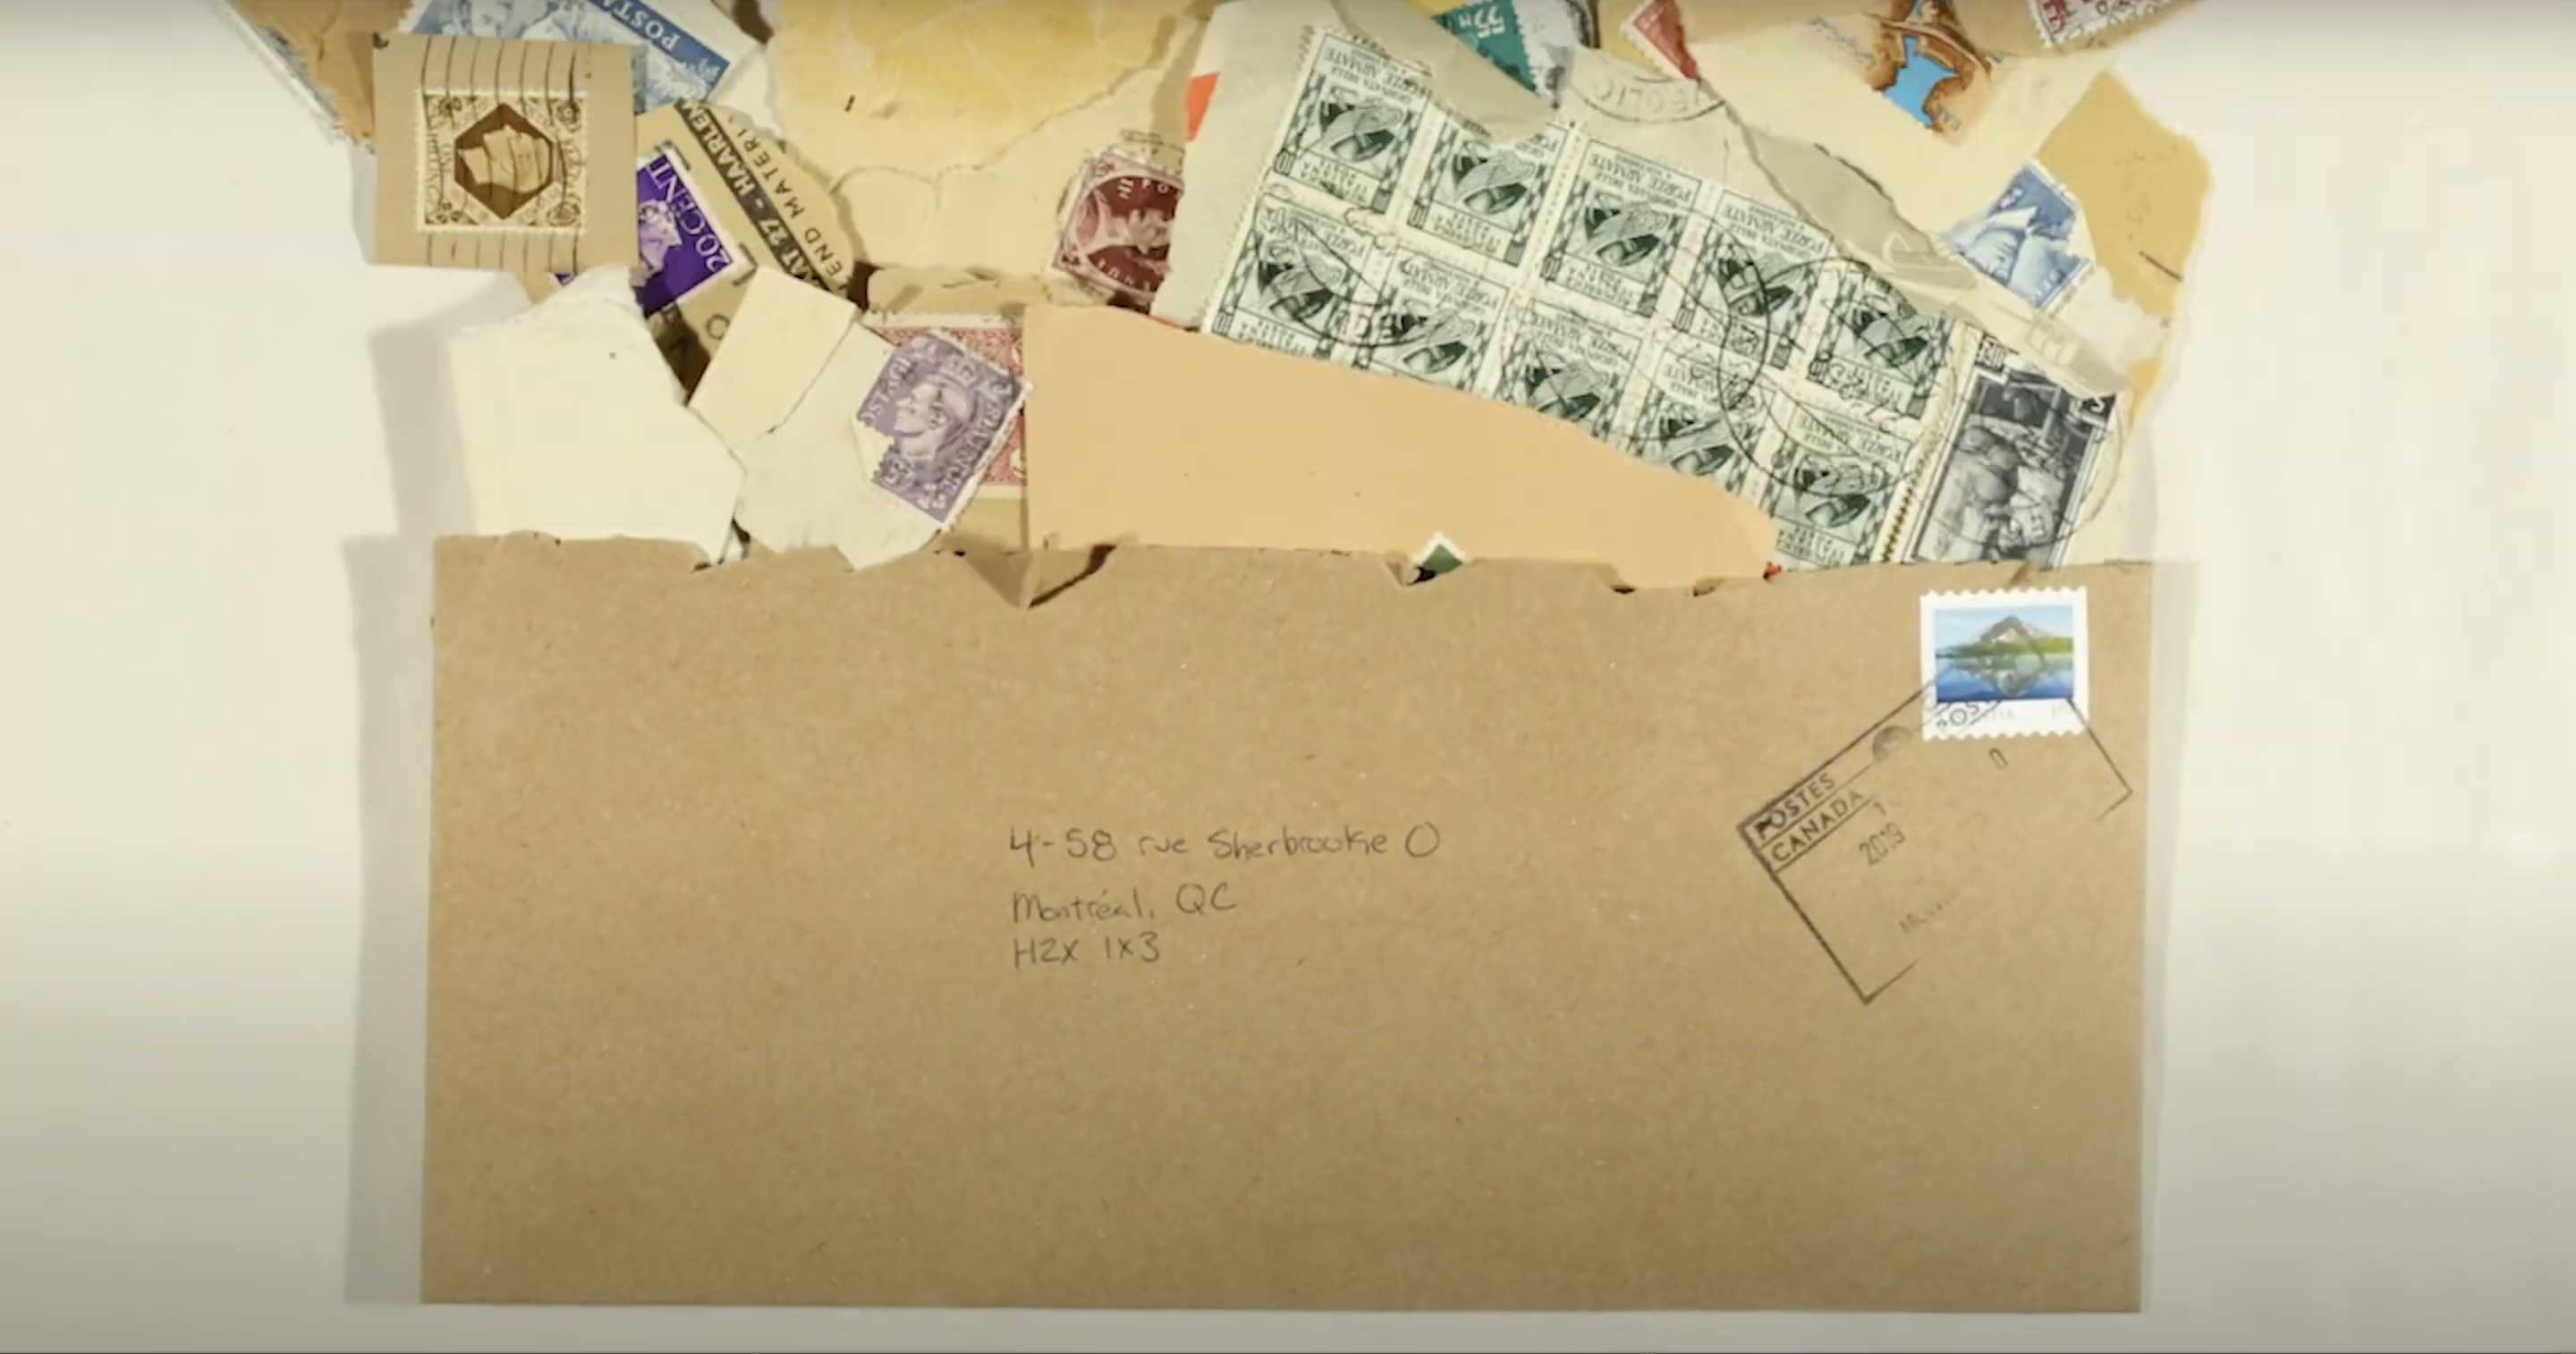 A brief history of the 20th century explored through postage stamps.